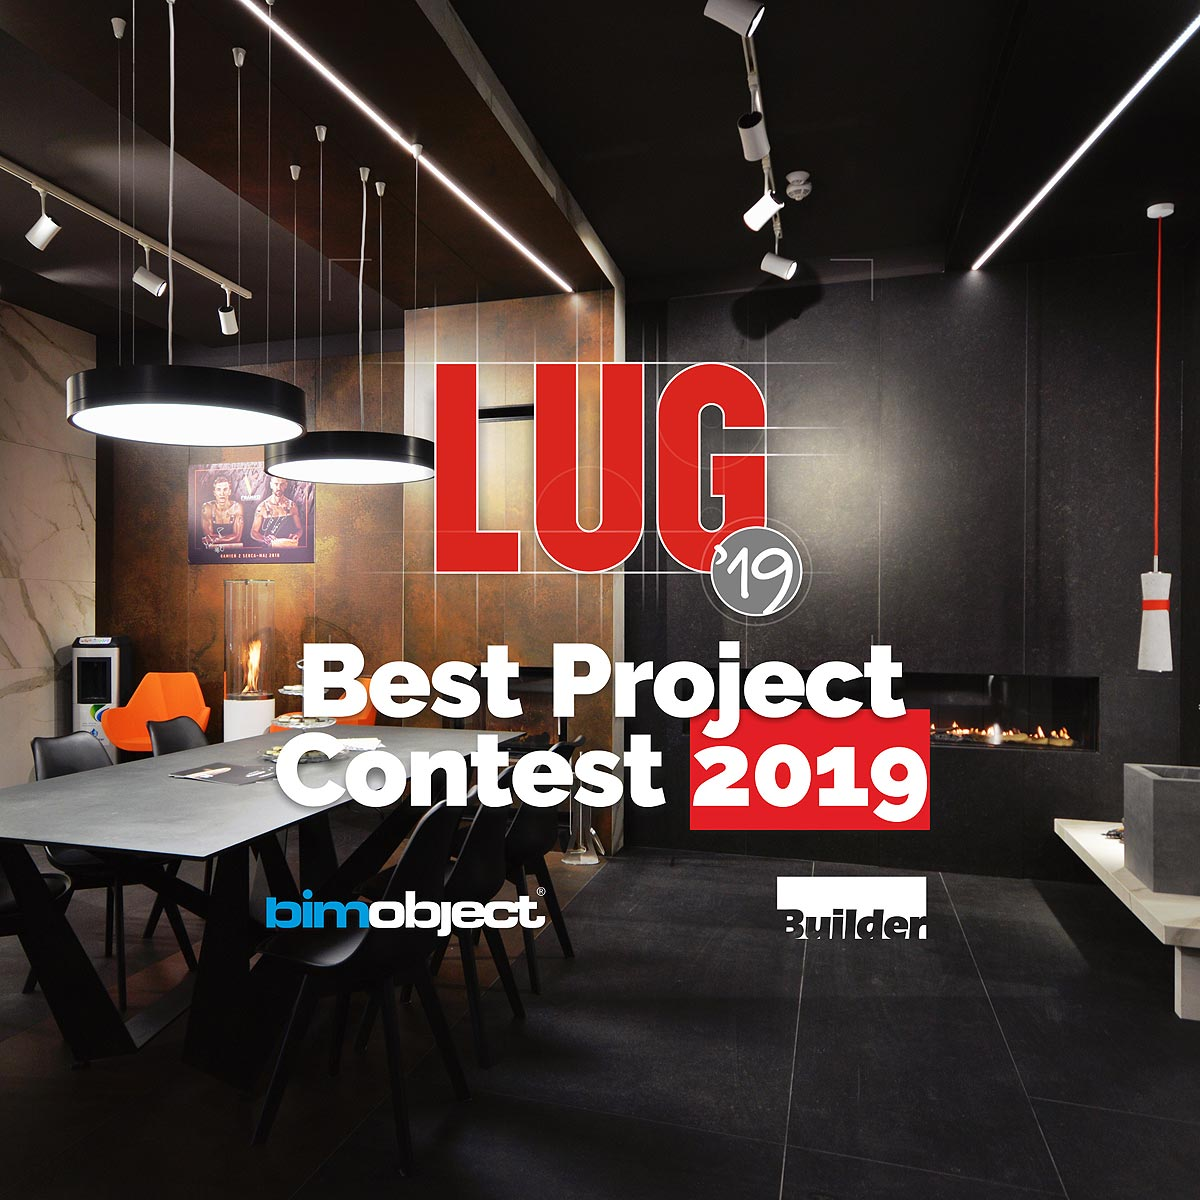 konkurs LUG Best Project Contest